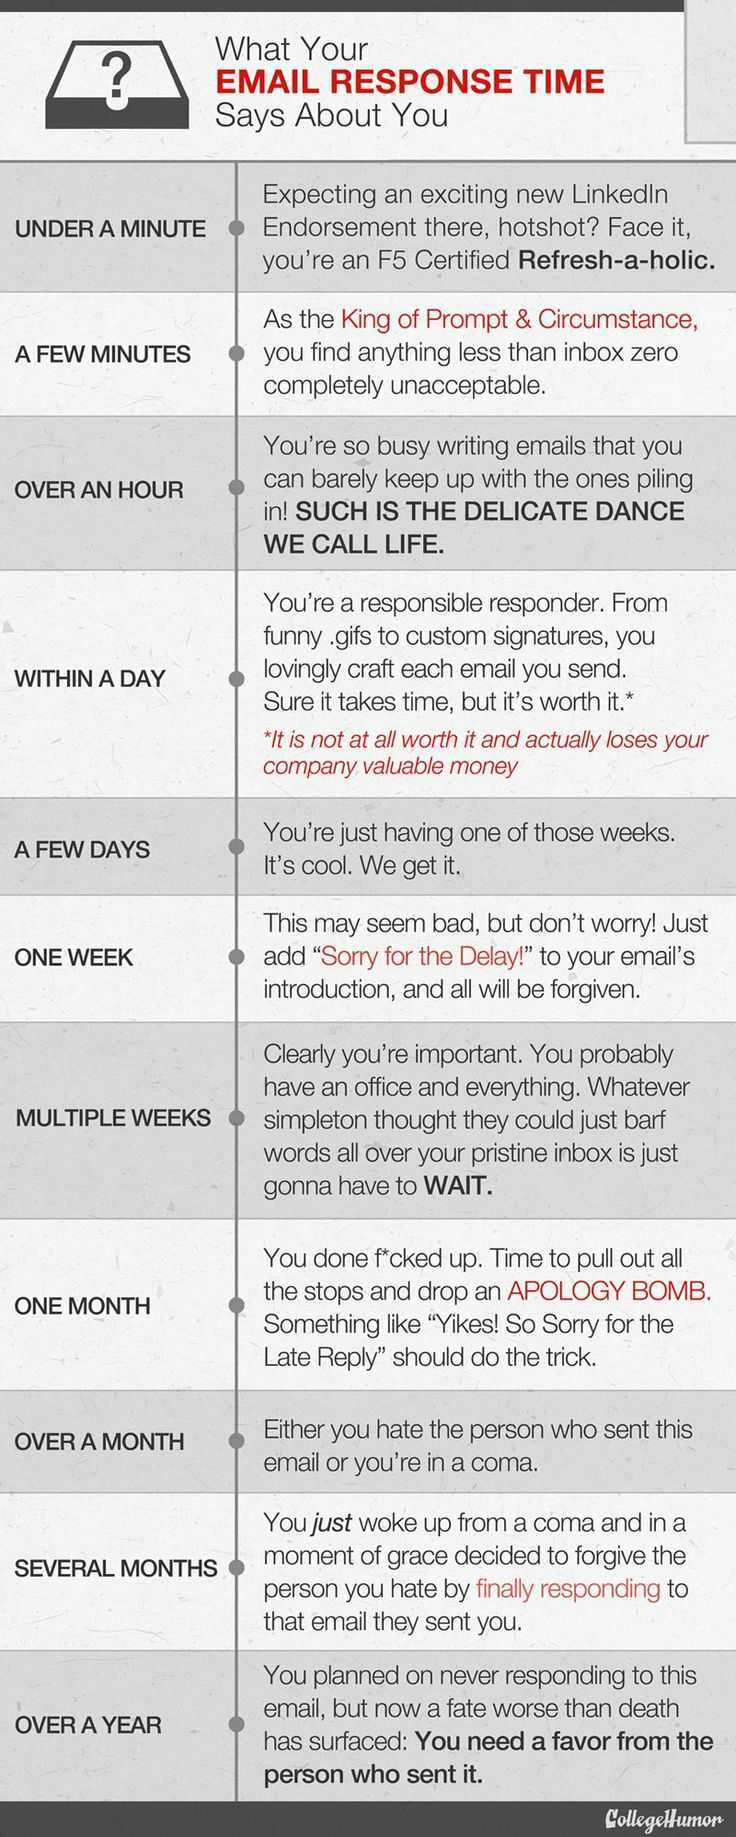 What your email response time says about you.